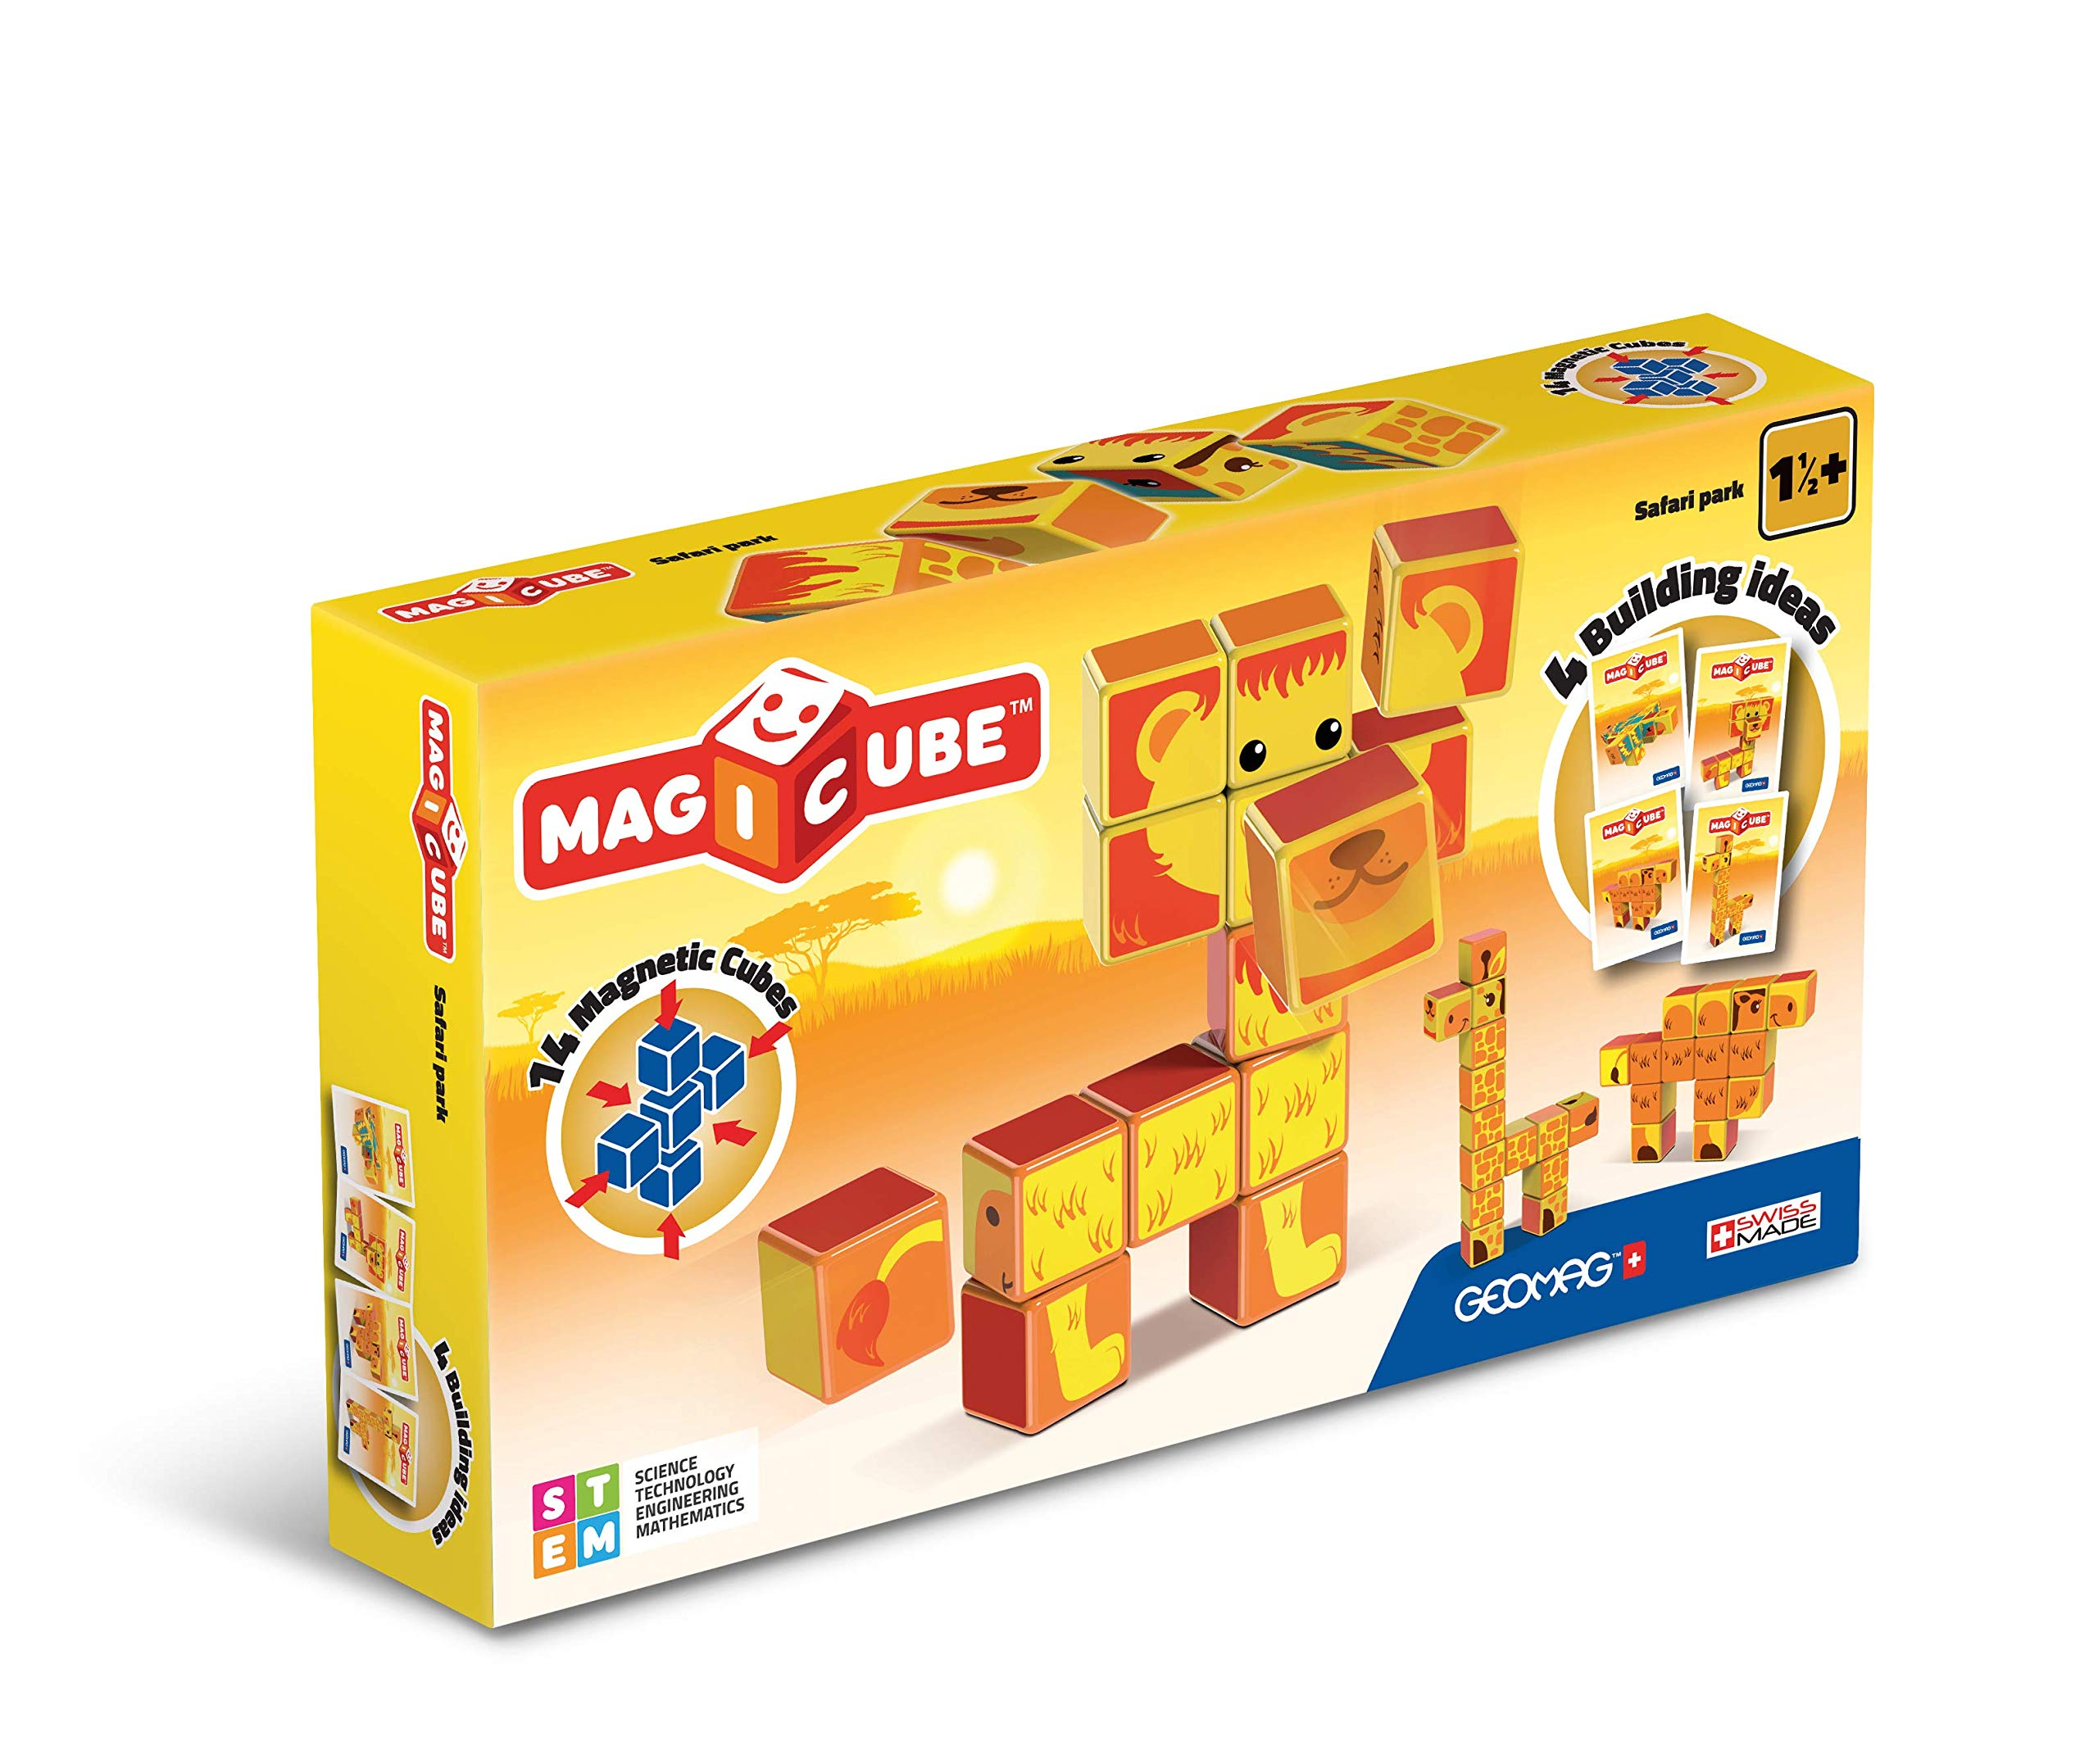 GEOMAG Magicube Safari Park, 16 Magnetic Cubes for Creative Play, Kids Age 1+, Educational Construction Toys Set by Geomag